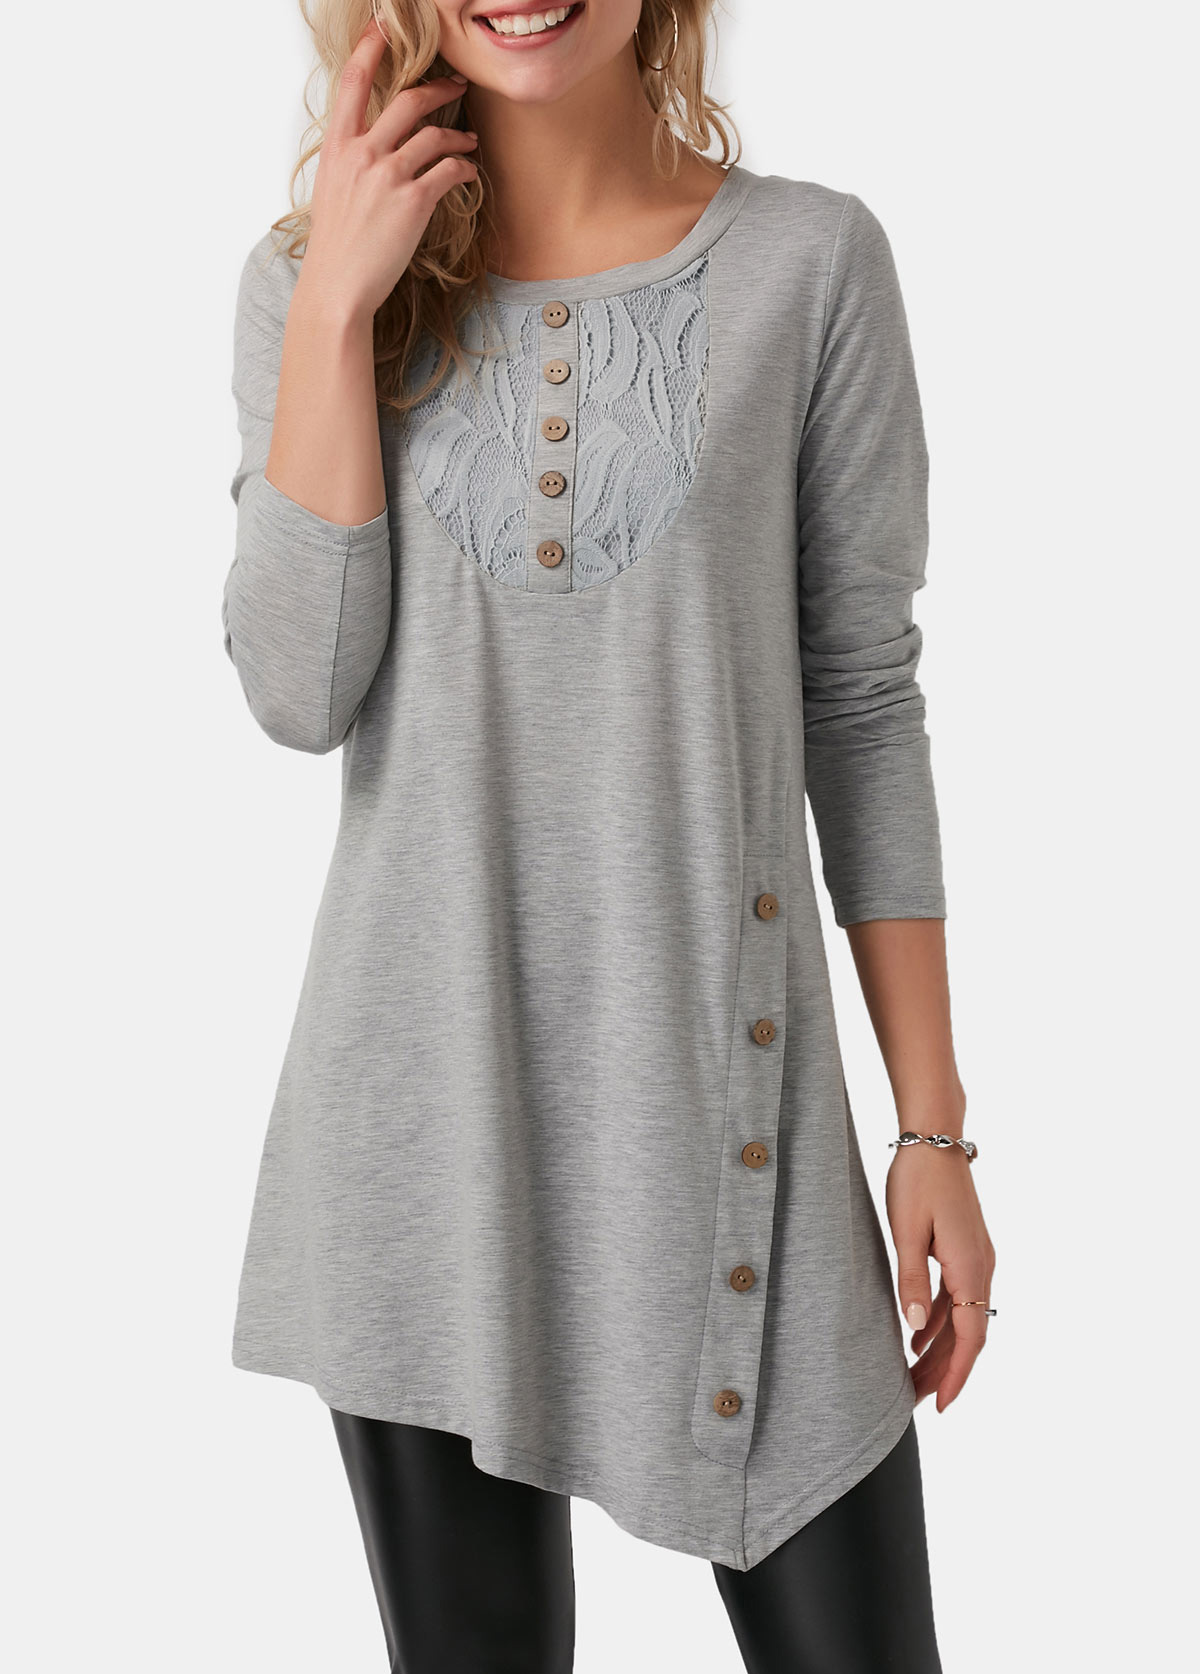 ROTITA Asymmetric Hem Light Grey Button Detail T Shirt